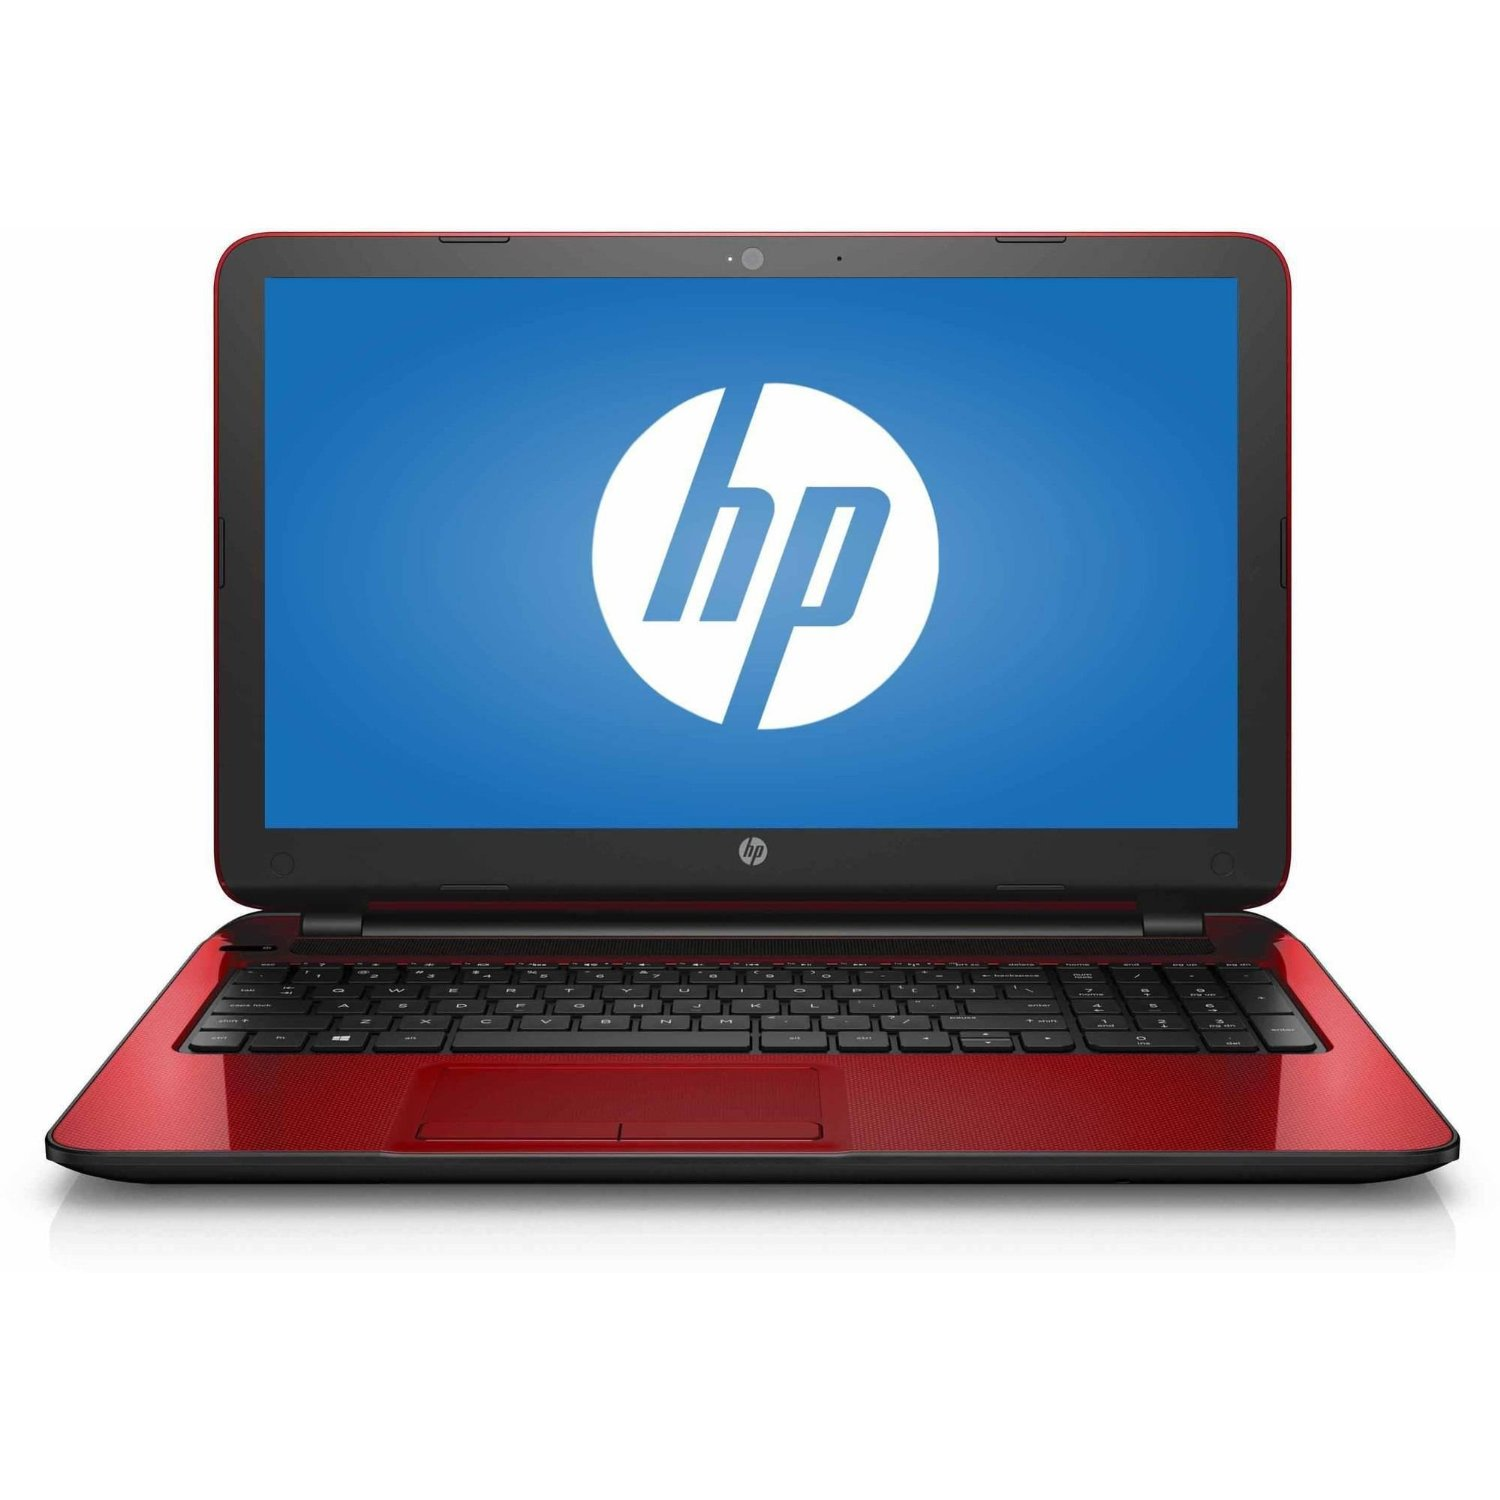 2017 HP Flyer Red 15.6 Inch Premium Flagship Laptop (Intel Pentium Quad-Core N3540 Processor up to 2.66GHz, 4GB RAM, 500GB Hard Drive, DVD Drive, HD Webcam, Windows 10 Home) (Certified Refurbished)